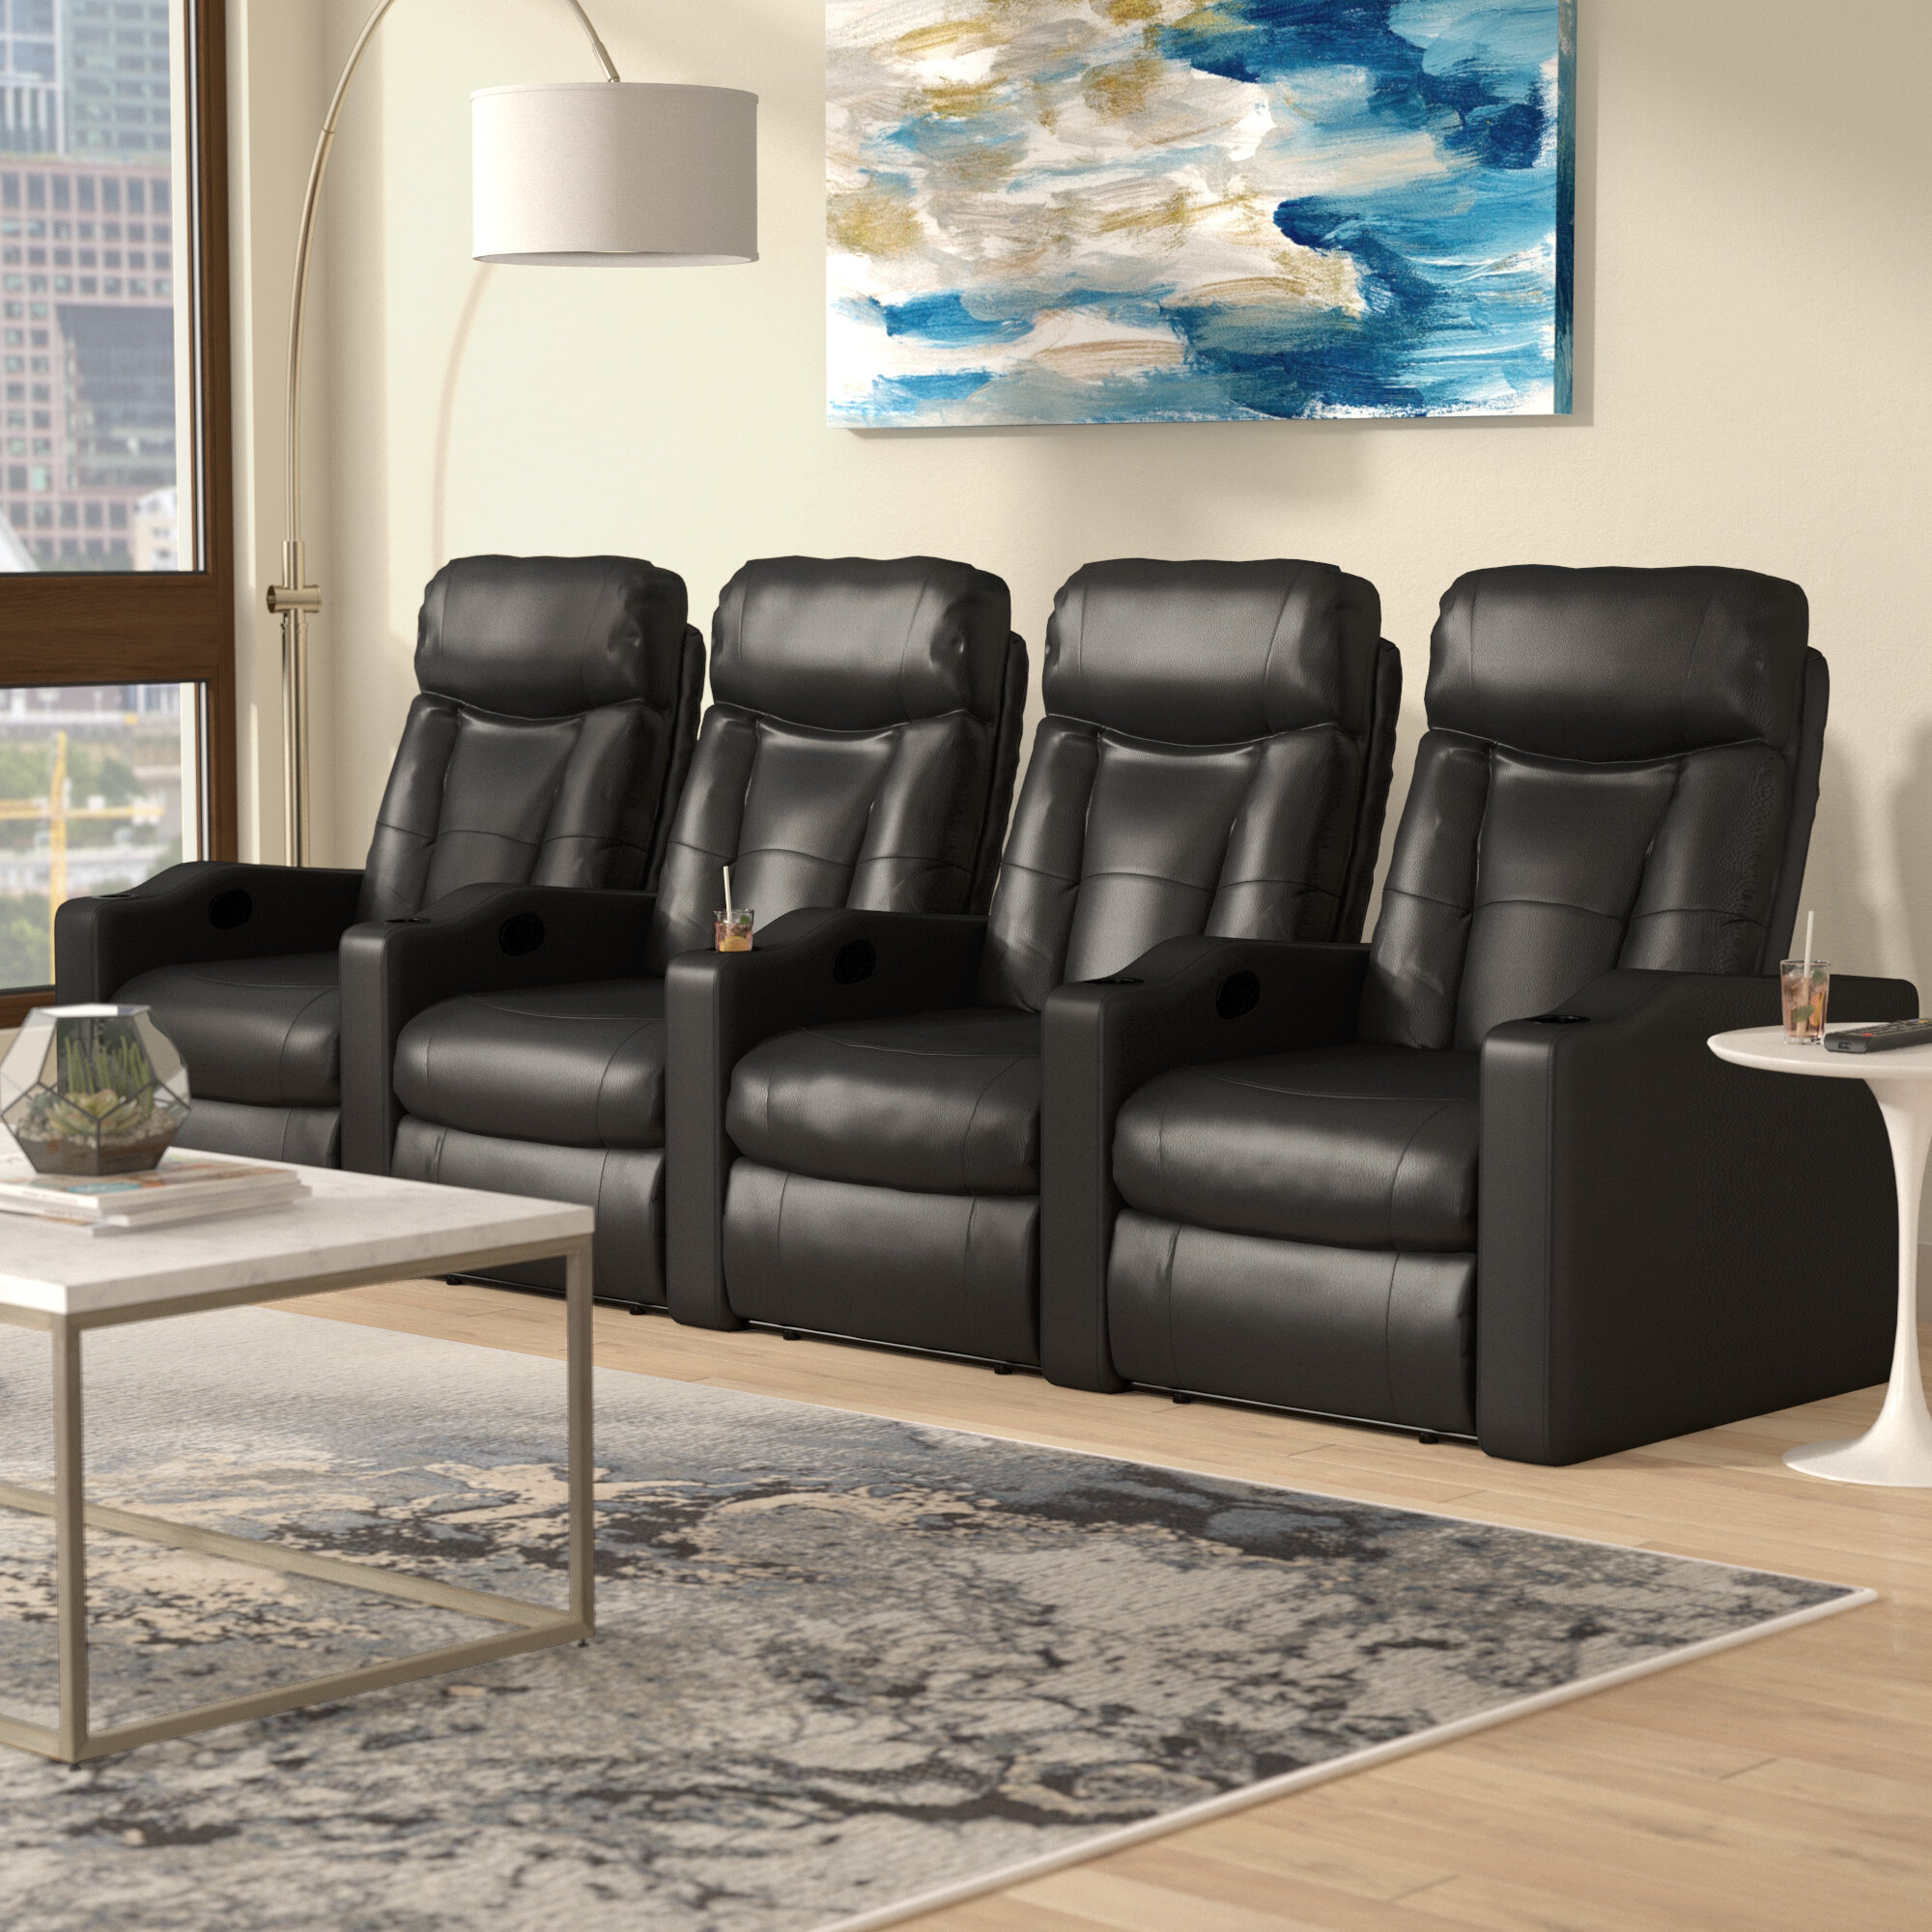 furniture reclinerplus home recliner plus leather theater sports recliners custom product